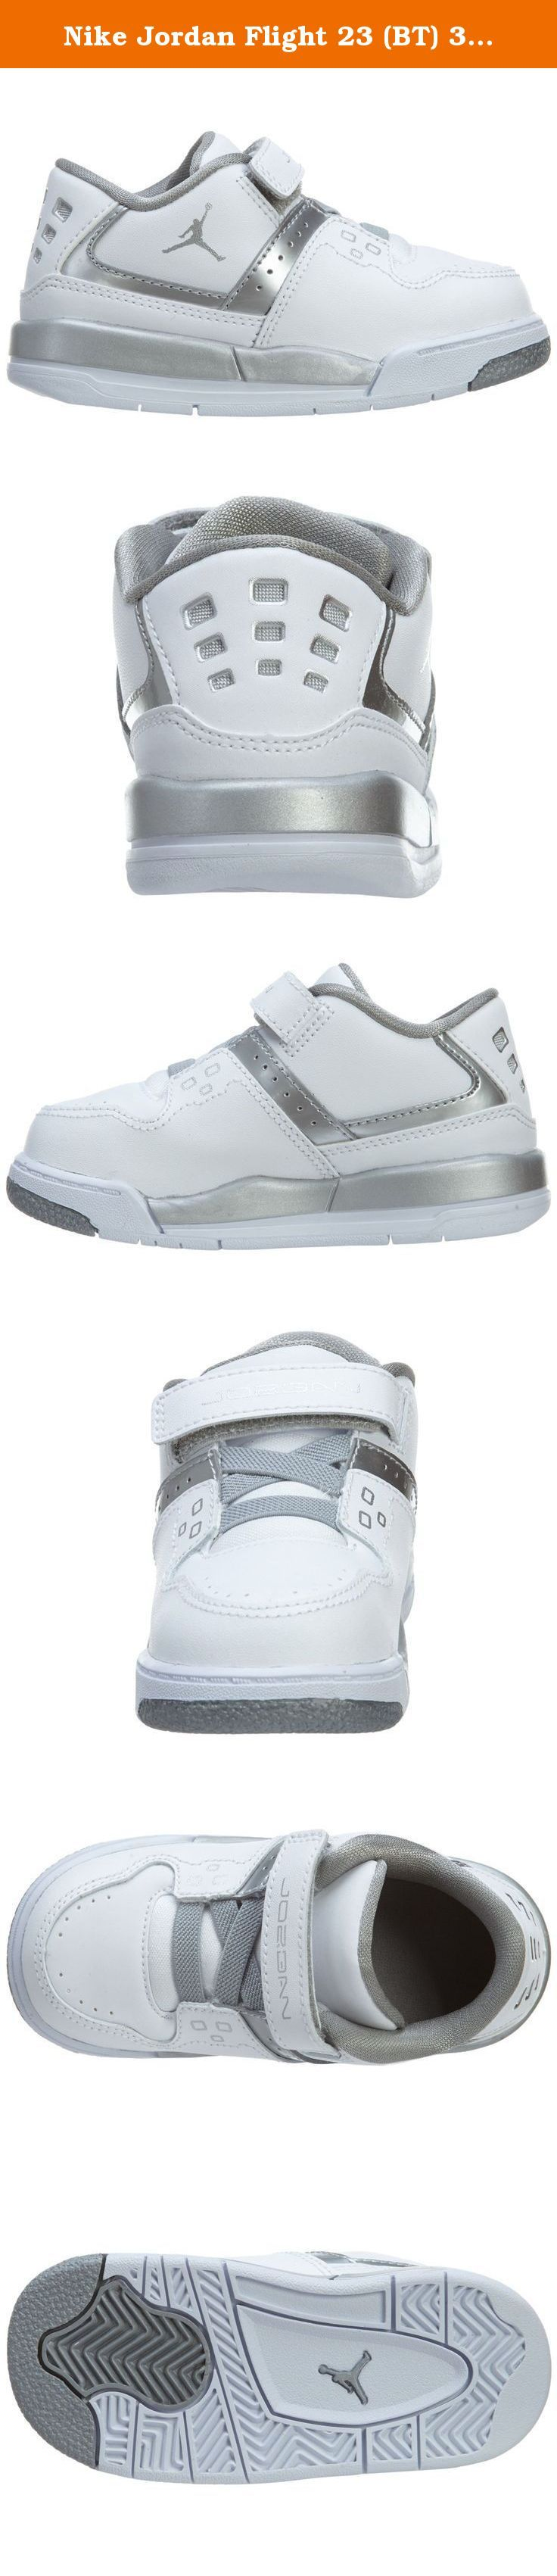 Nike Jordan Flight 23 (BT) 317823-100 White / Metallic Silver 9 M US Toddler. Get your little one started on the right foot with the Jordan Flight 23. Uppers made of leather and mesh and tied together with Velcro and elastic lace up closure. Perforations on toe top, and side panel provides superior breathability. Padded tongue and collar and cushioned footbed for all day comfort.